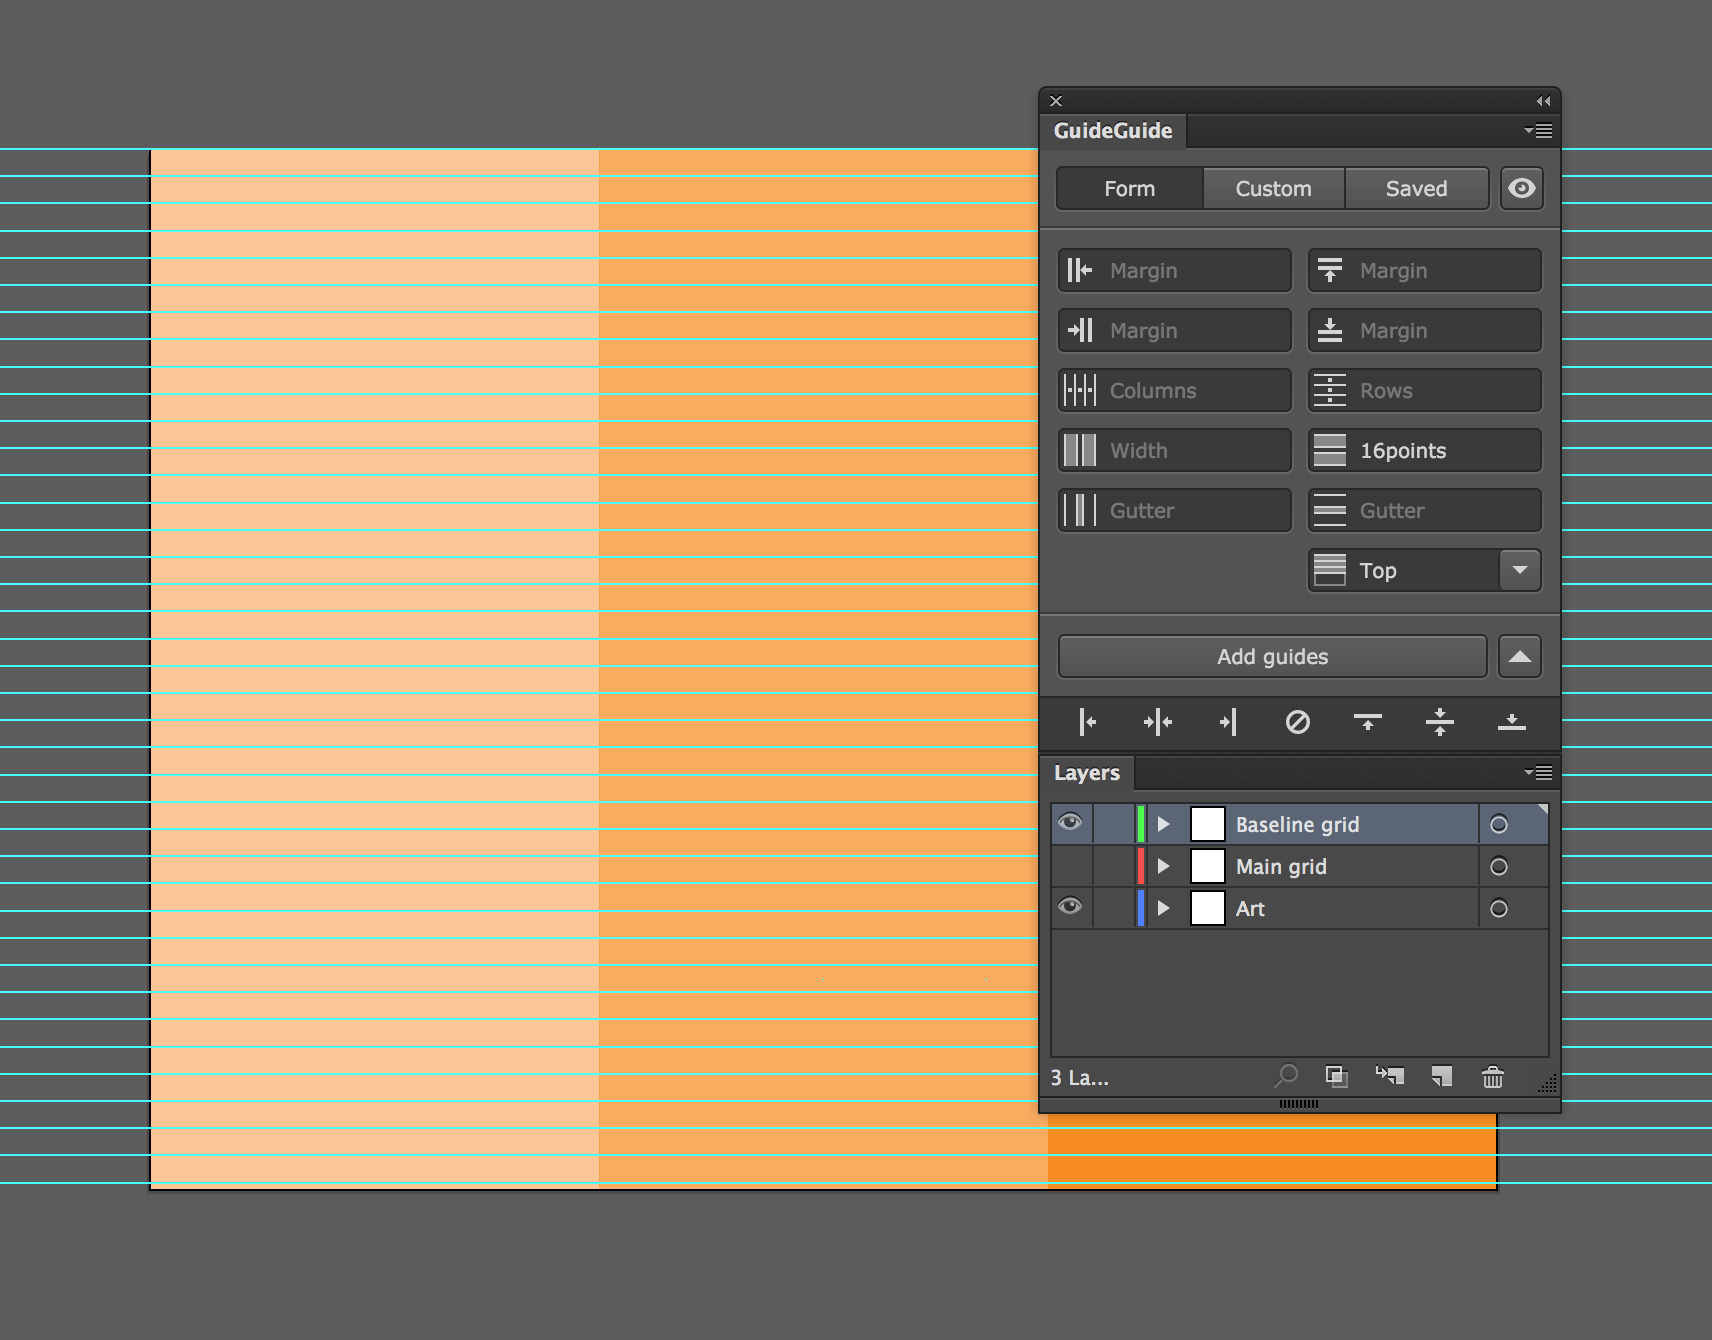 Image of an Illustrator document with a baseline grid created using guides.